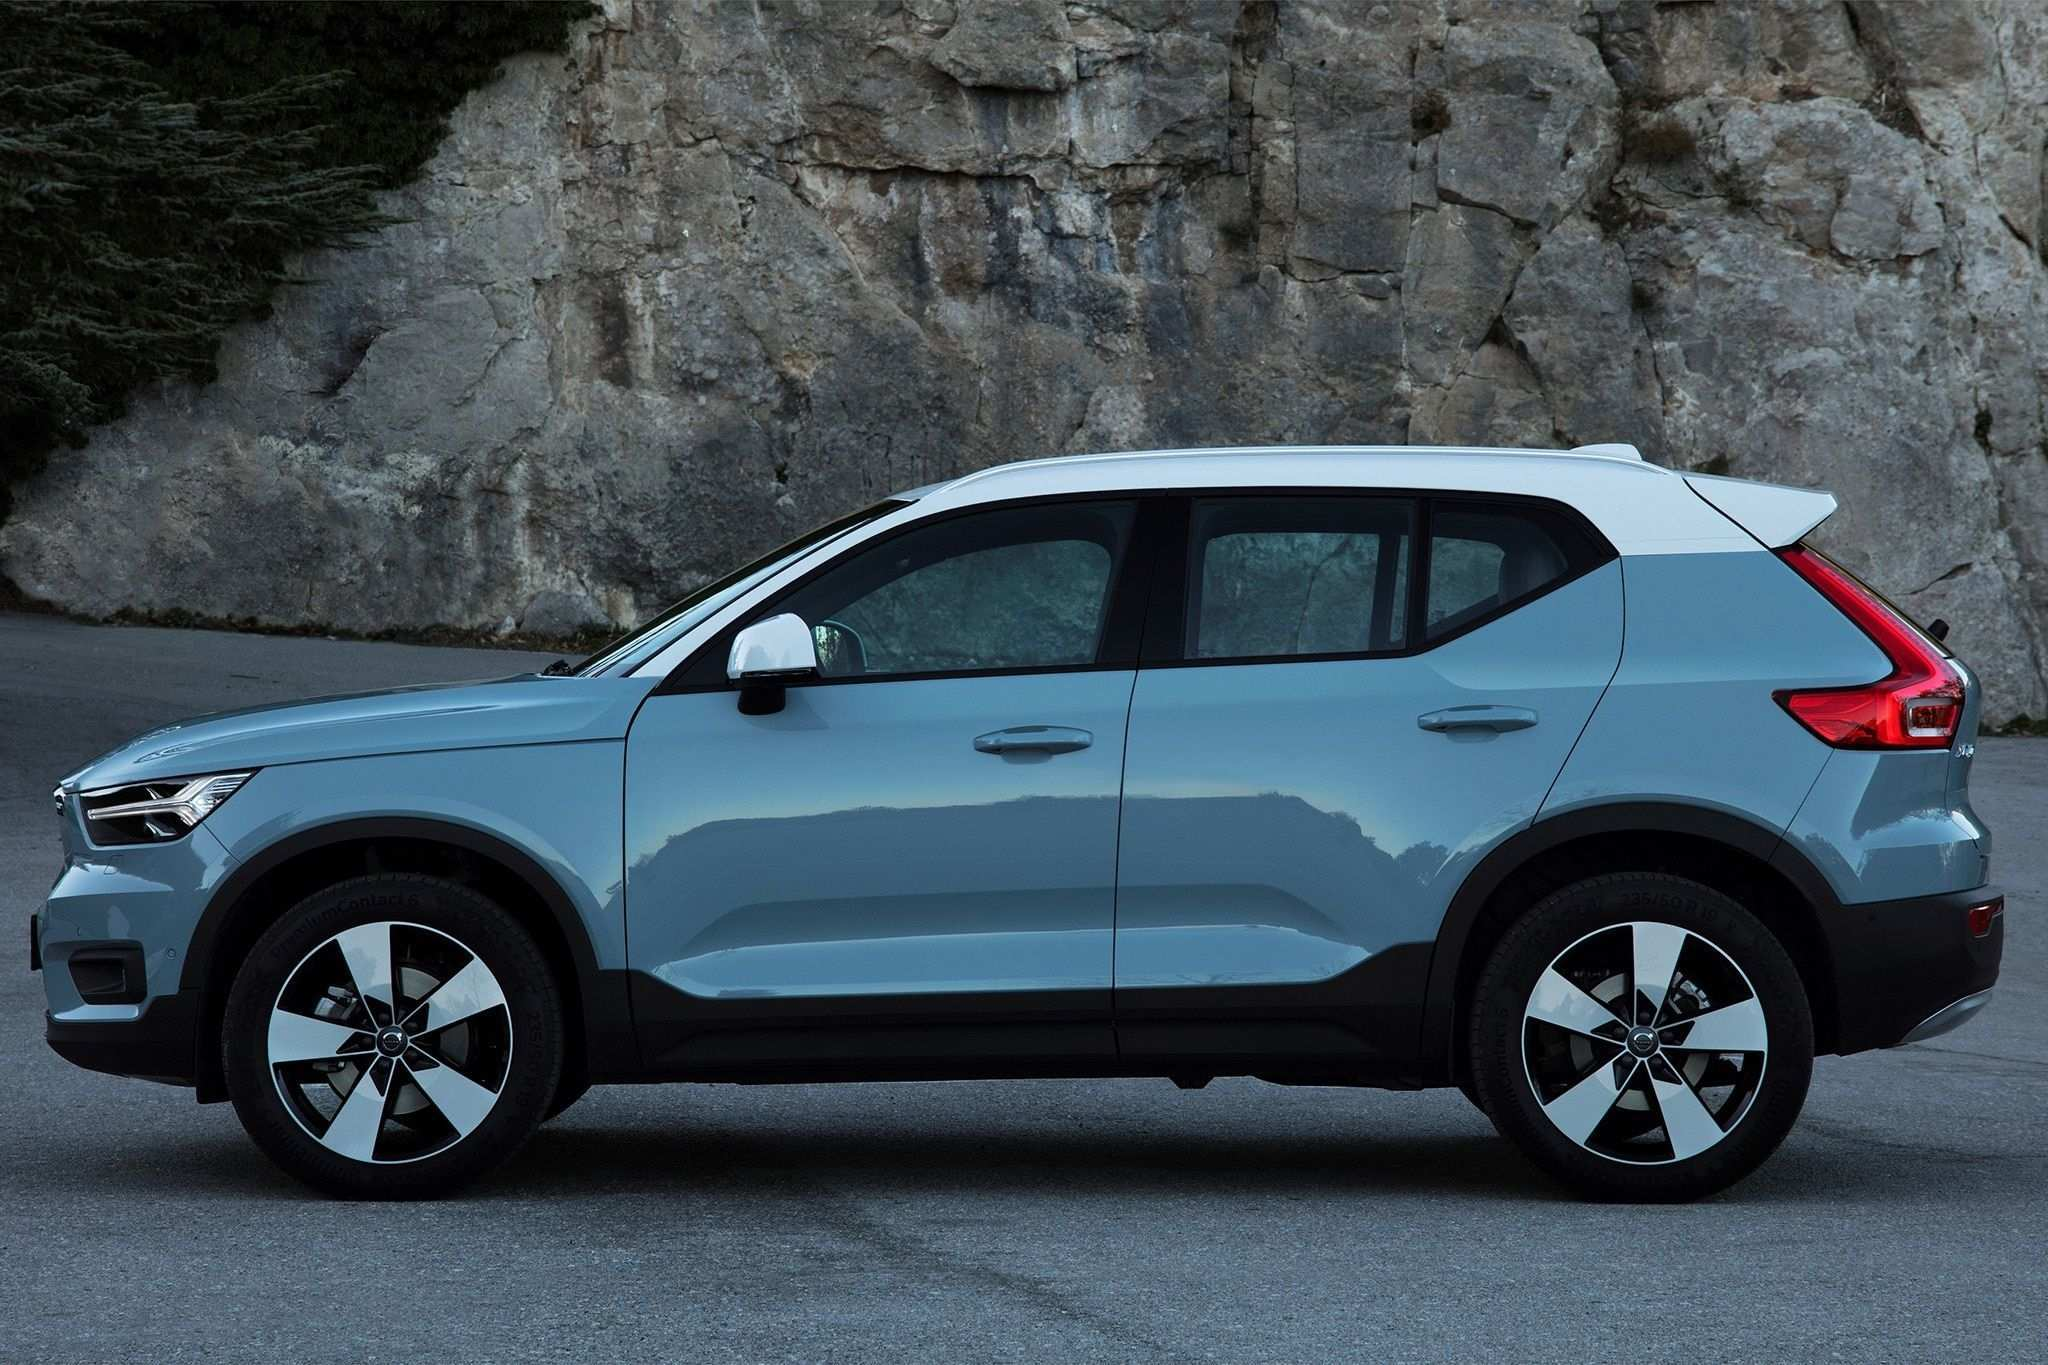 65 New Volvo To Go Electric By 2019 Pictures